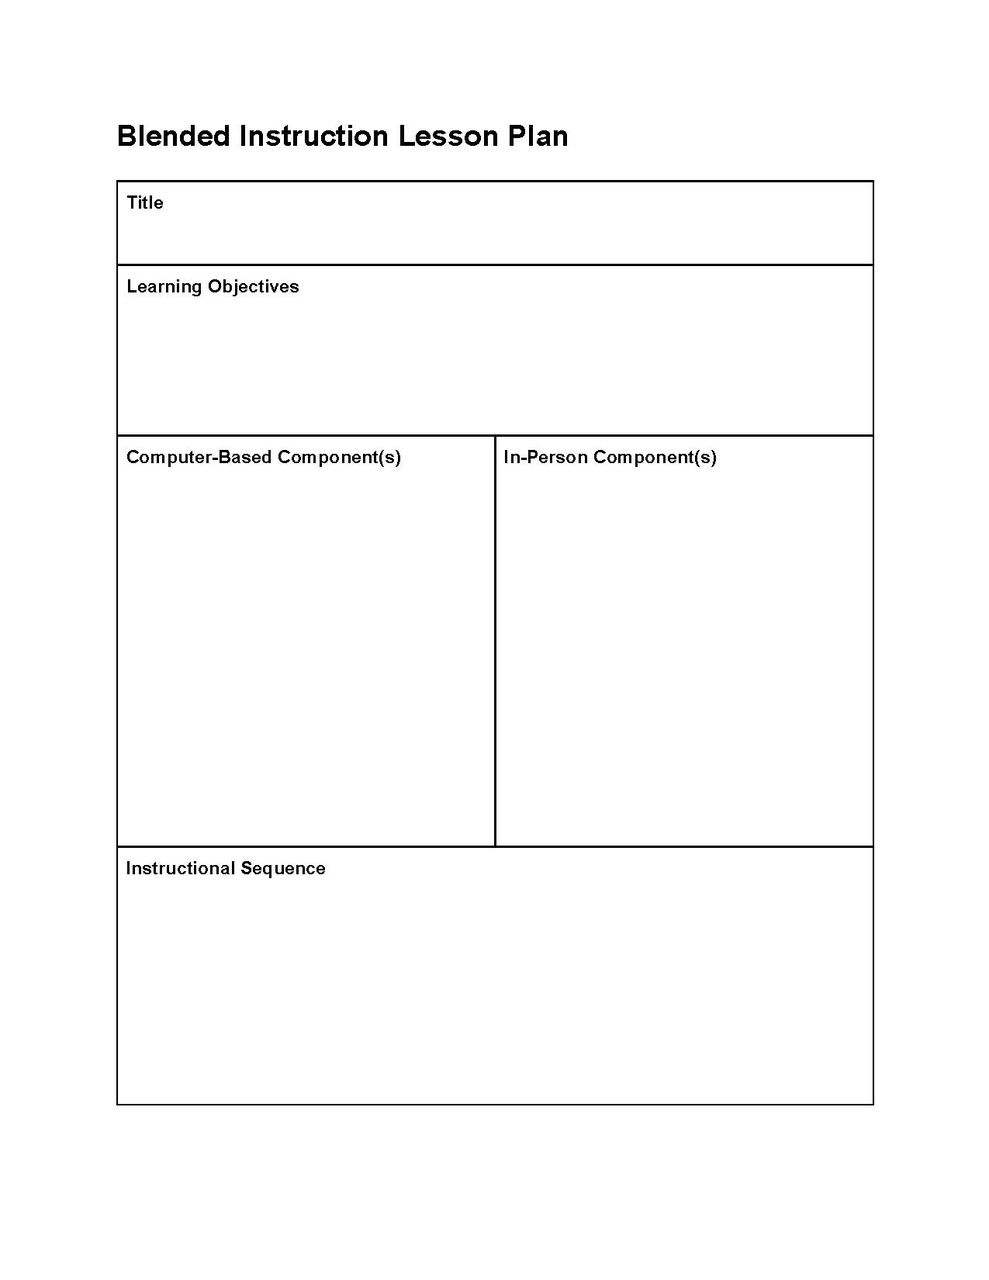 this editable lesson plan template can be used to create blended